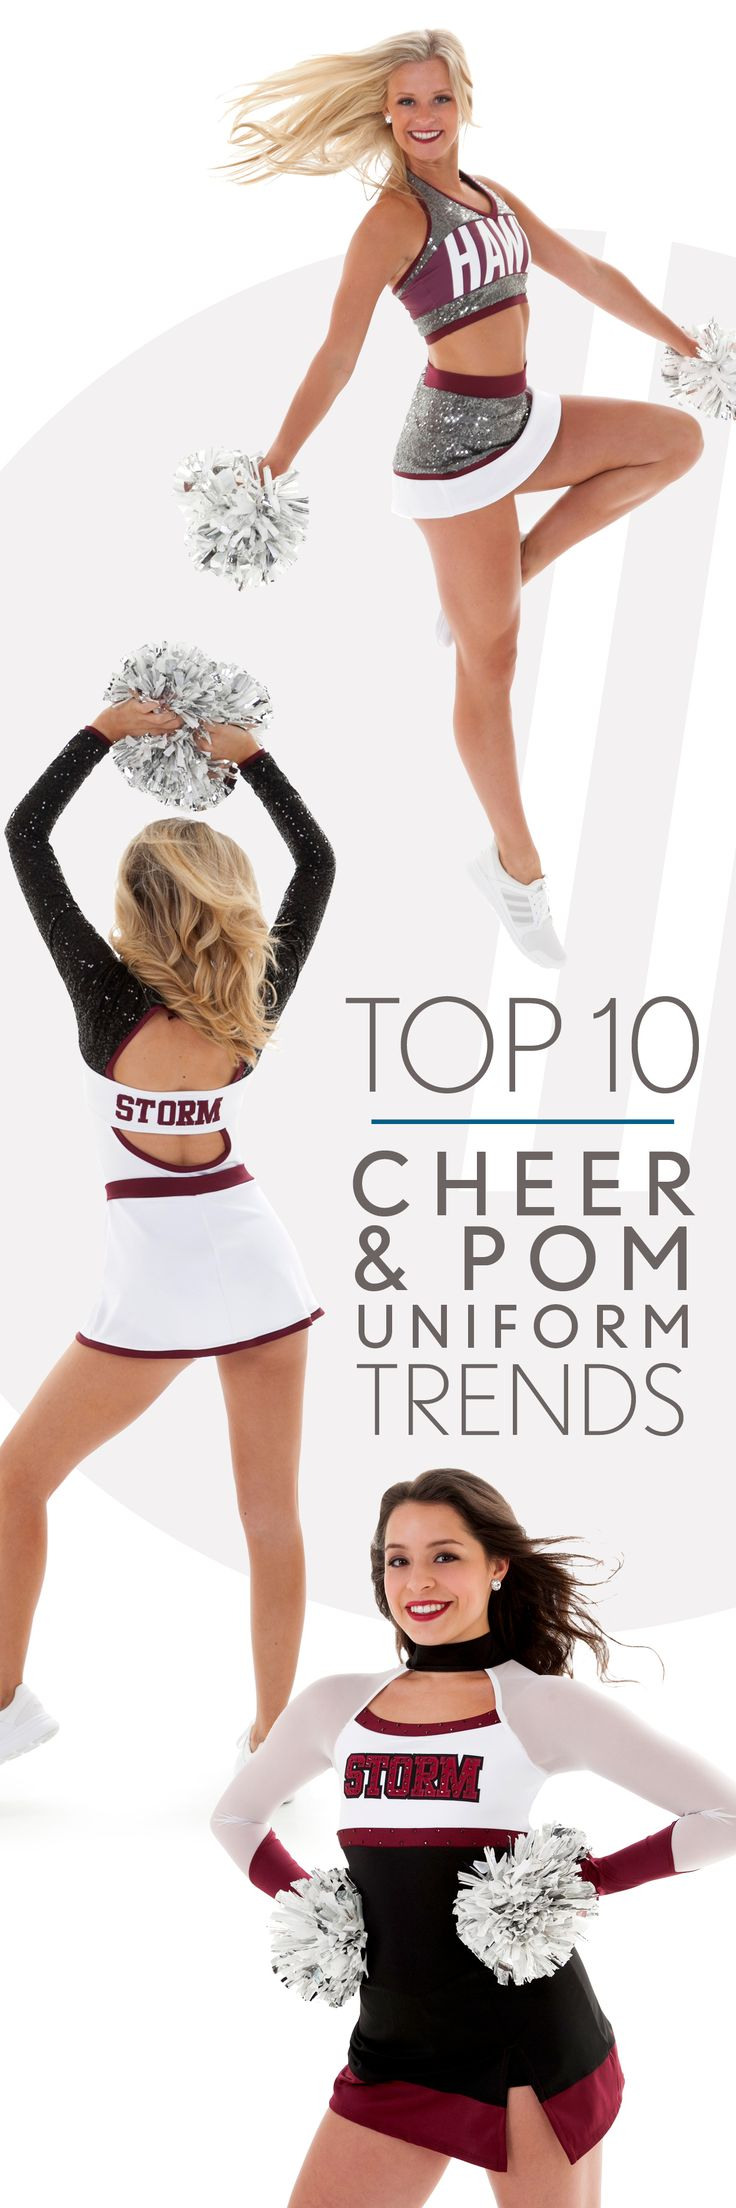 Top 10 Cheer & Pom Uniform Trends for 2017-2018!